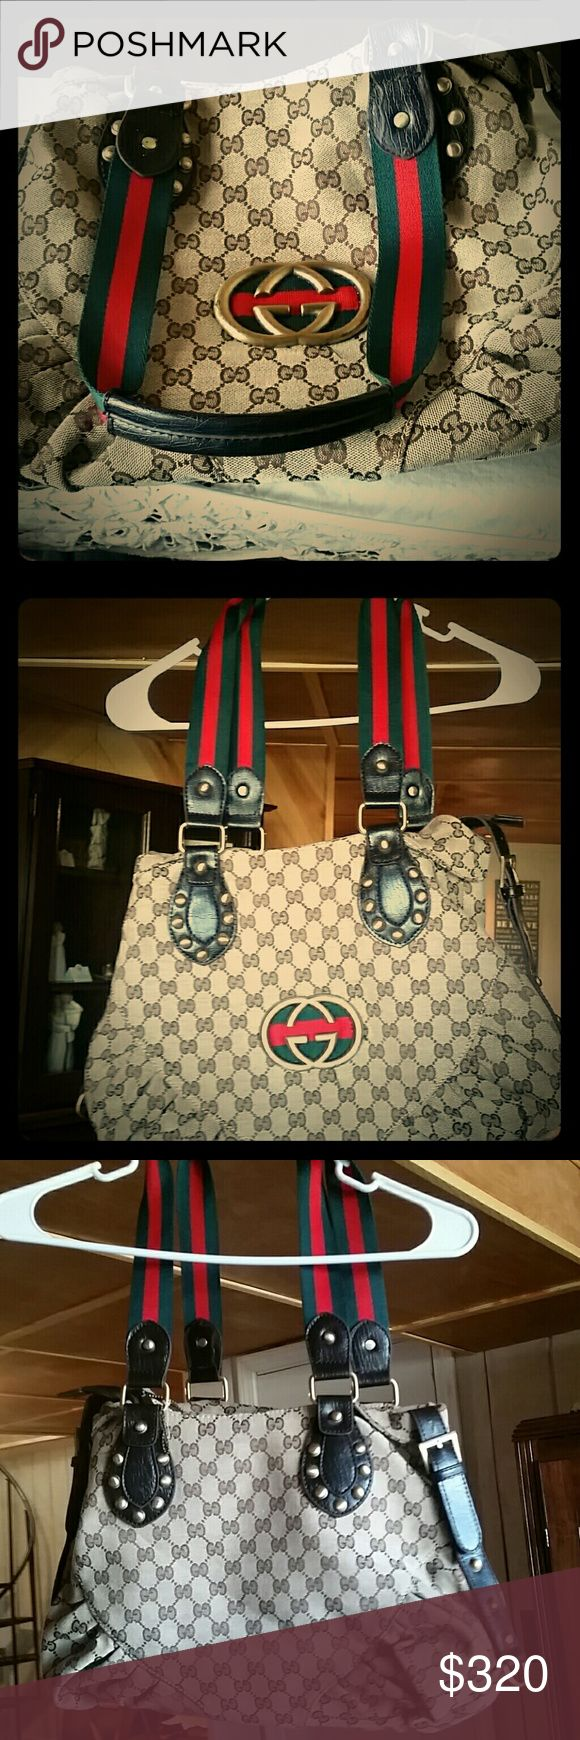 Gucci large sized purse Authentic, Vintage, GUCCI satchel. I hate to part with; but I have new ones that took its place, as we all let happen.  No dustbag. Large Monogram symbols, Gucci Satchel, size large.  The purse is chocolate and a golden beige. . With GUCCI symbols all over purse with the darling red and green straps.   **The main zipper, not the one on inside, gets stuck sometimes; but that's easily taken care of.**    I have deducted the, zipper getting stuck at times.  Feel free to…